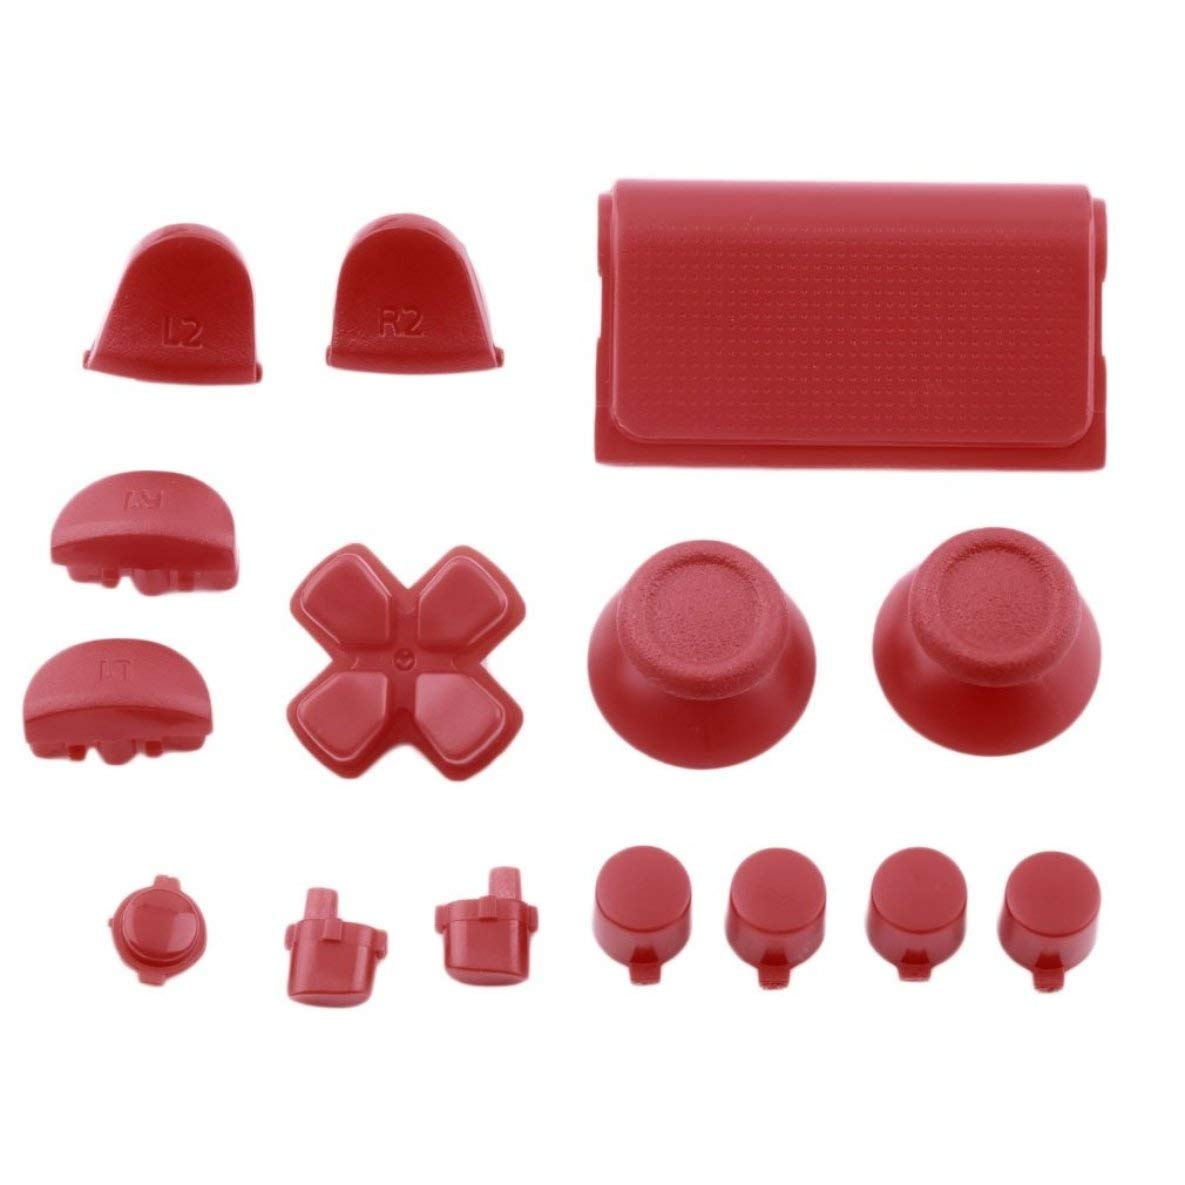 Replacement Buttons Custom Mold Kit for PS4 for Playstation 4 Controller Solid Color Plastic Gamepads Spare Parts Moliies